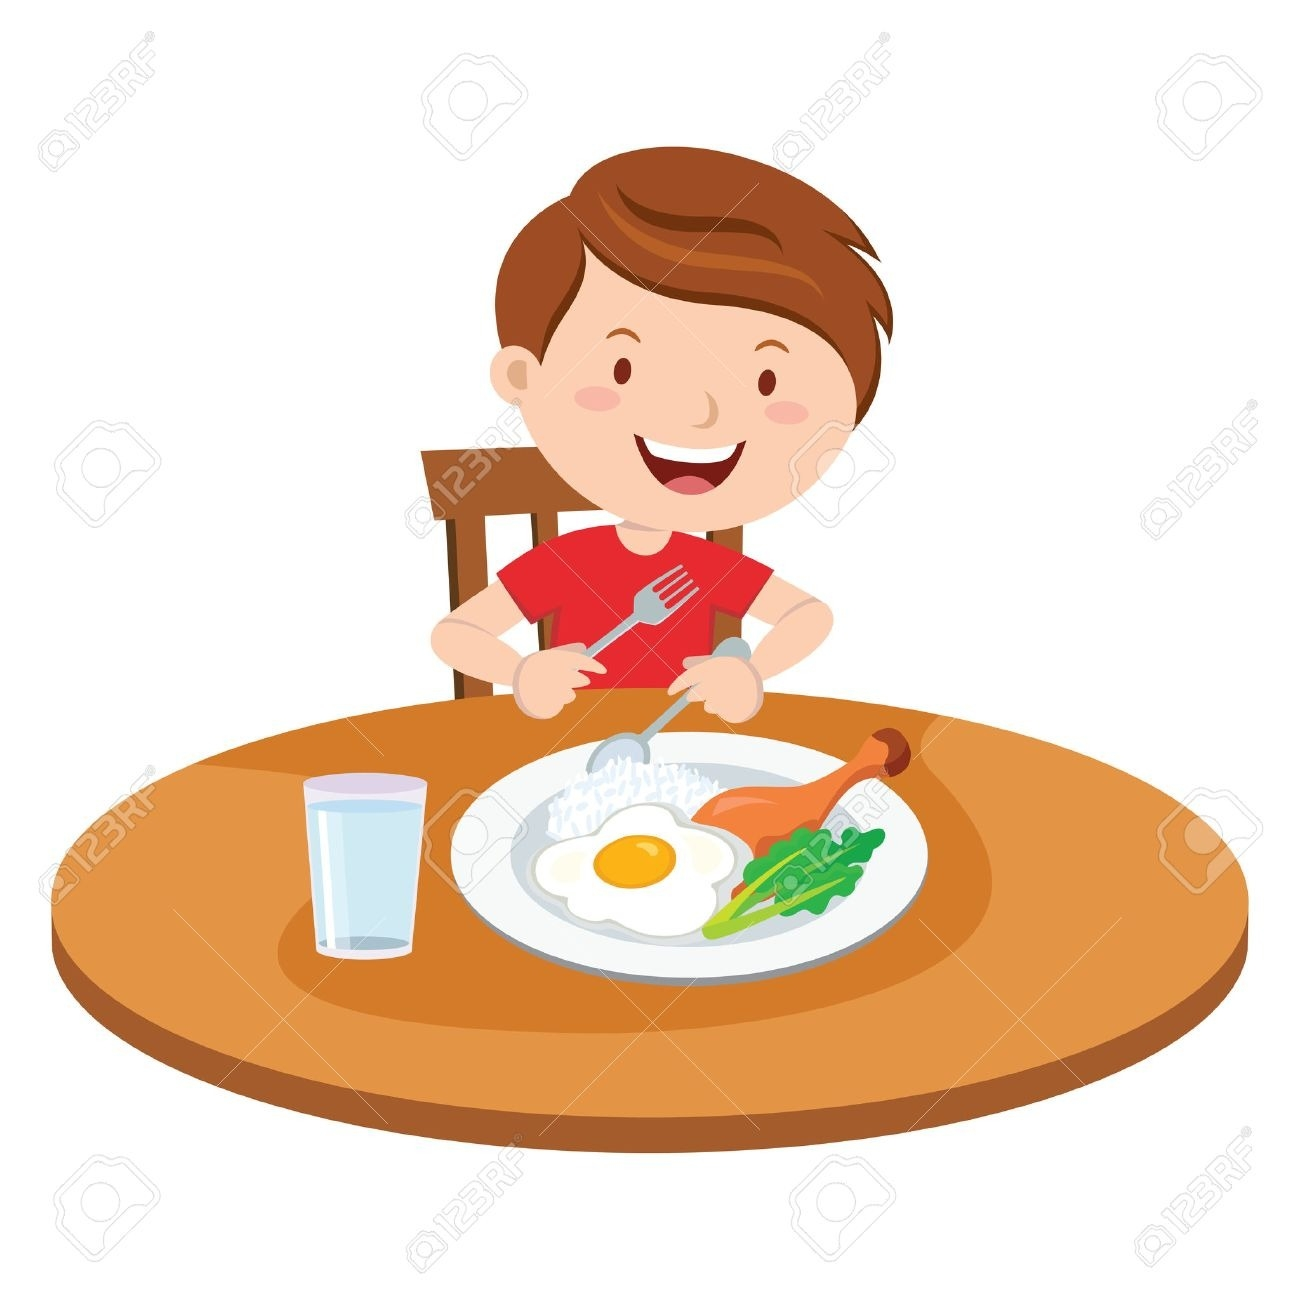 Boy Eating Meal Royalty Free Cliparts, Vectors, And Stock within Boy.